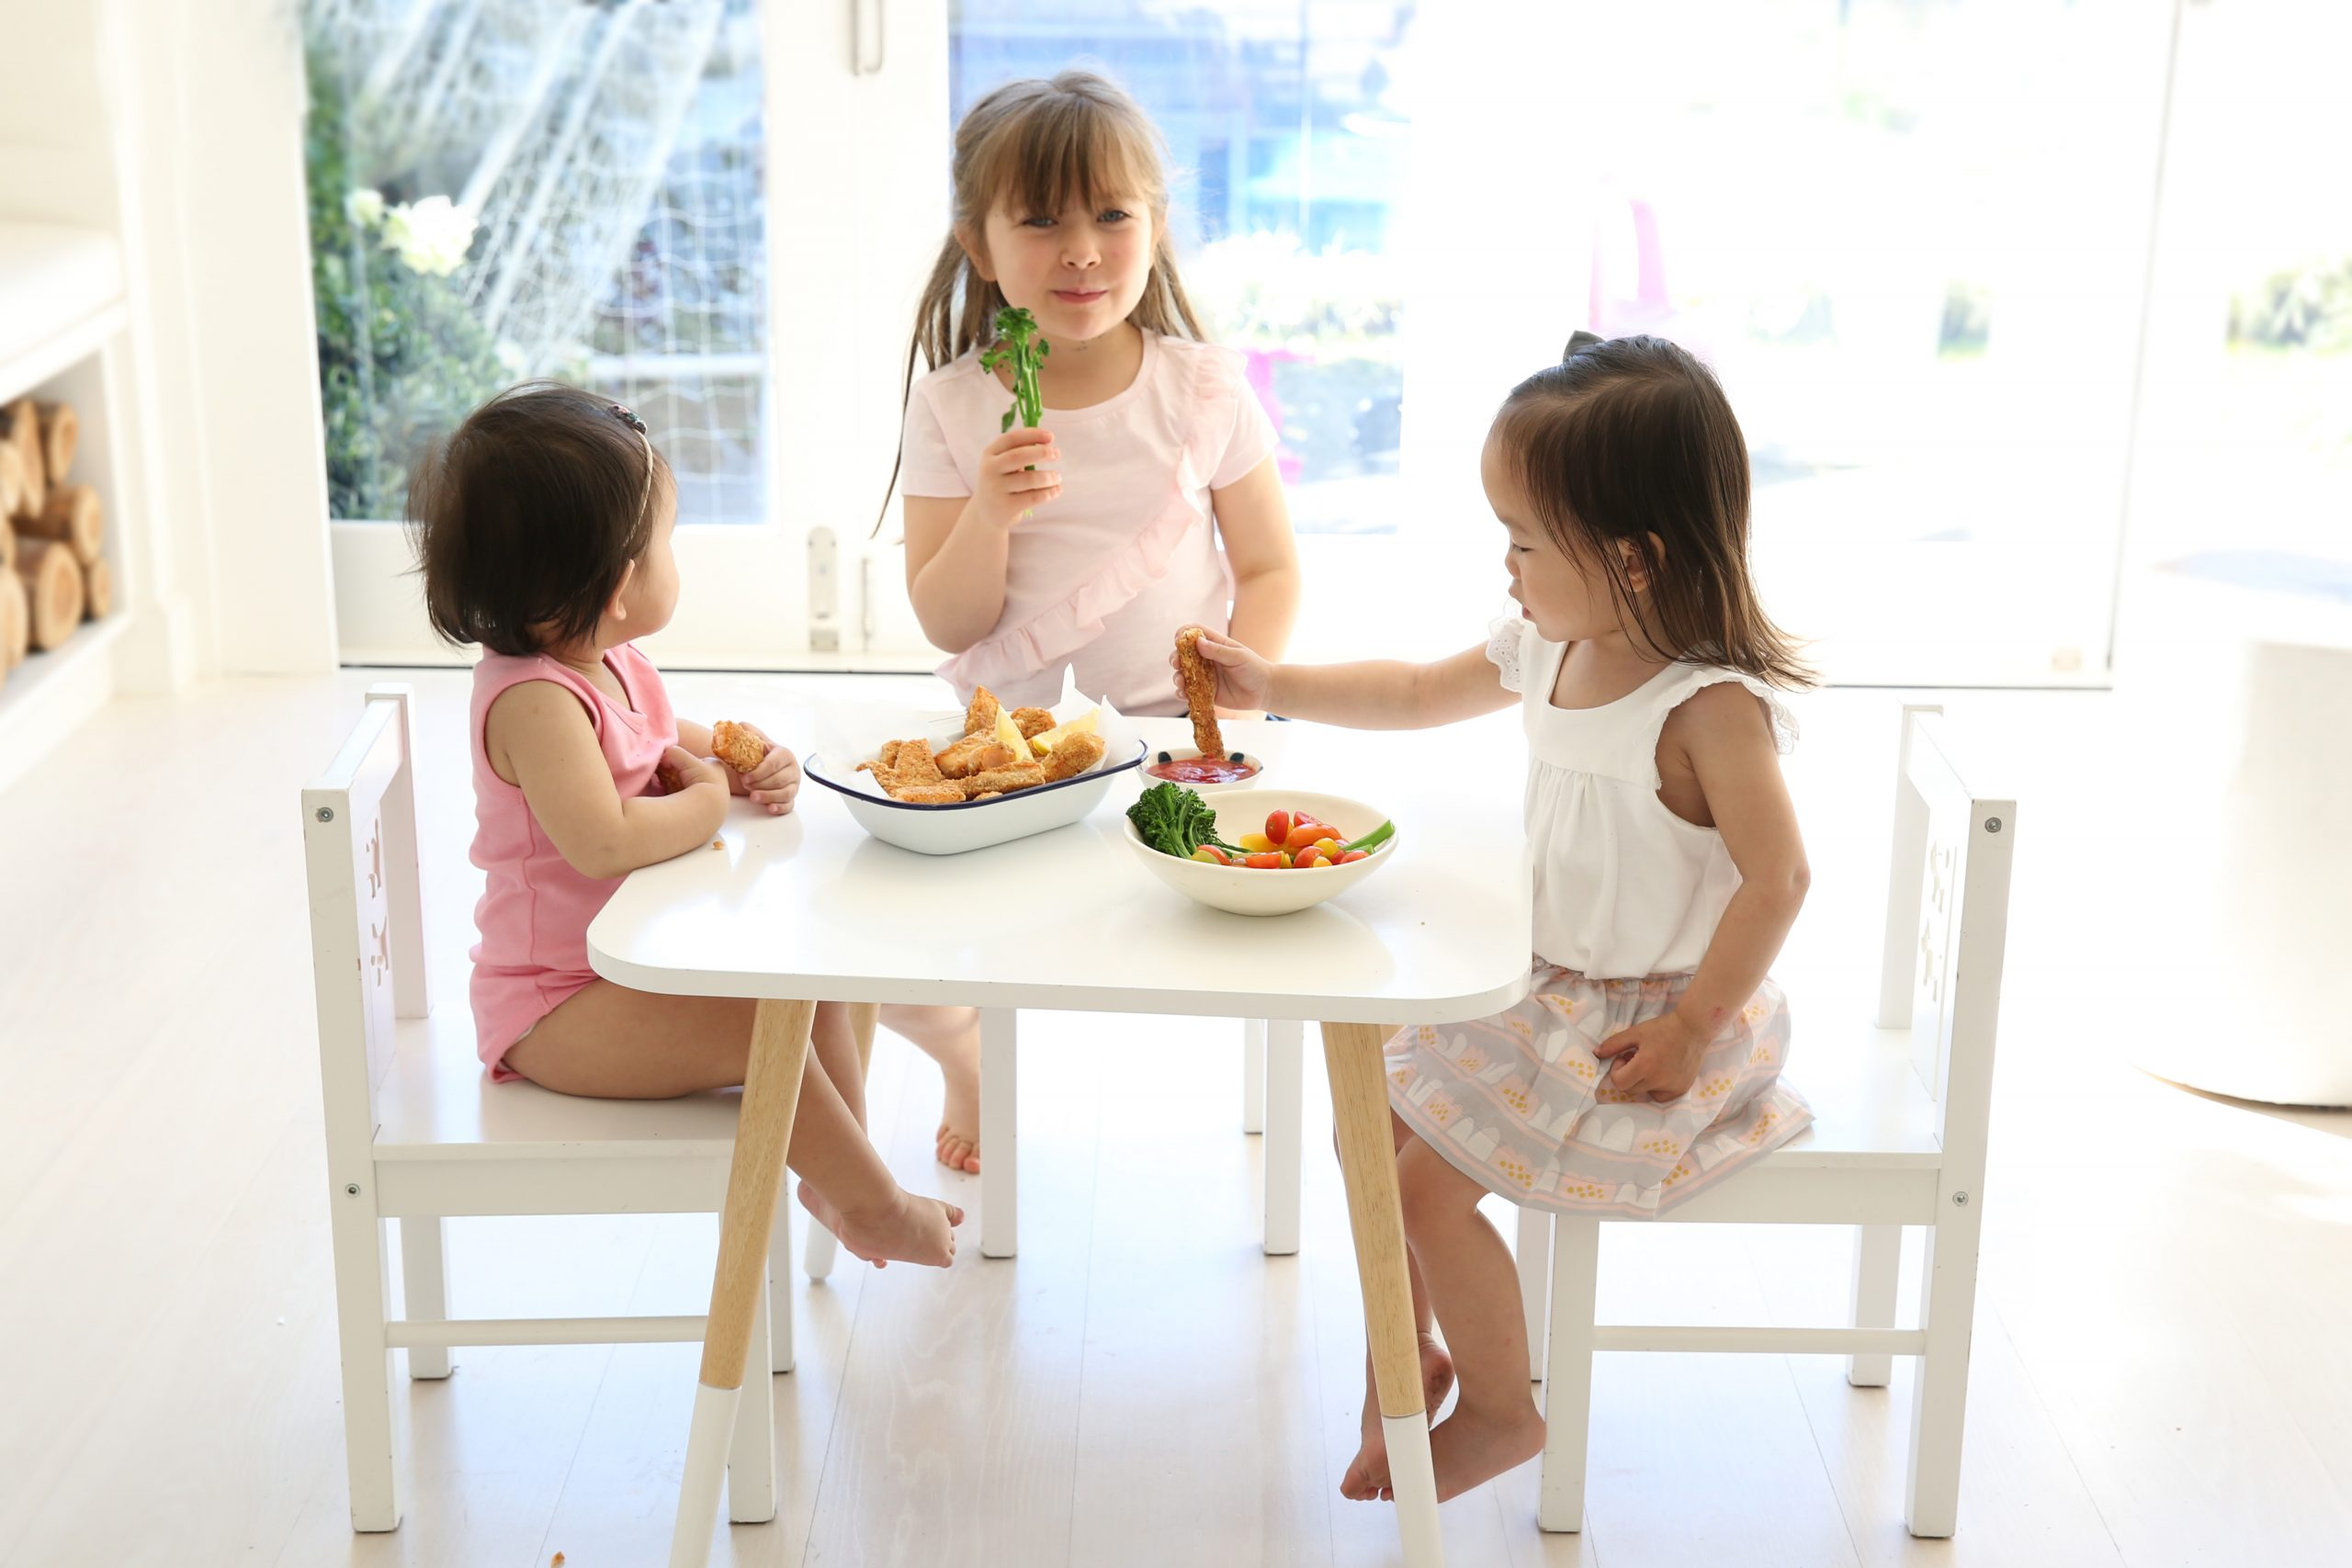 Kids having wholesome child meals together